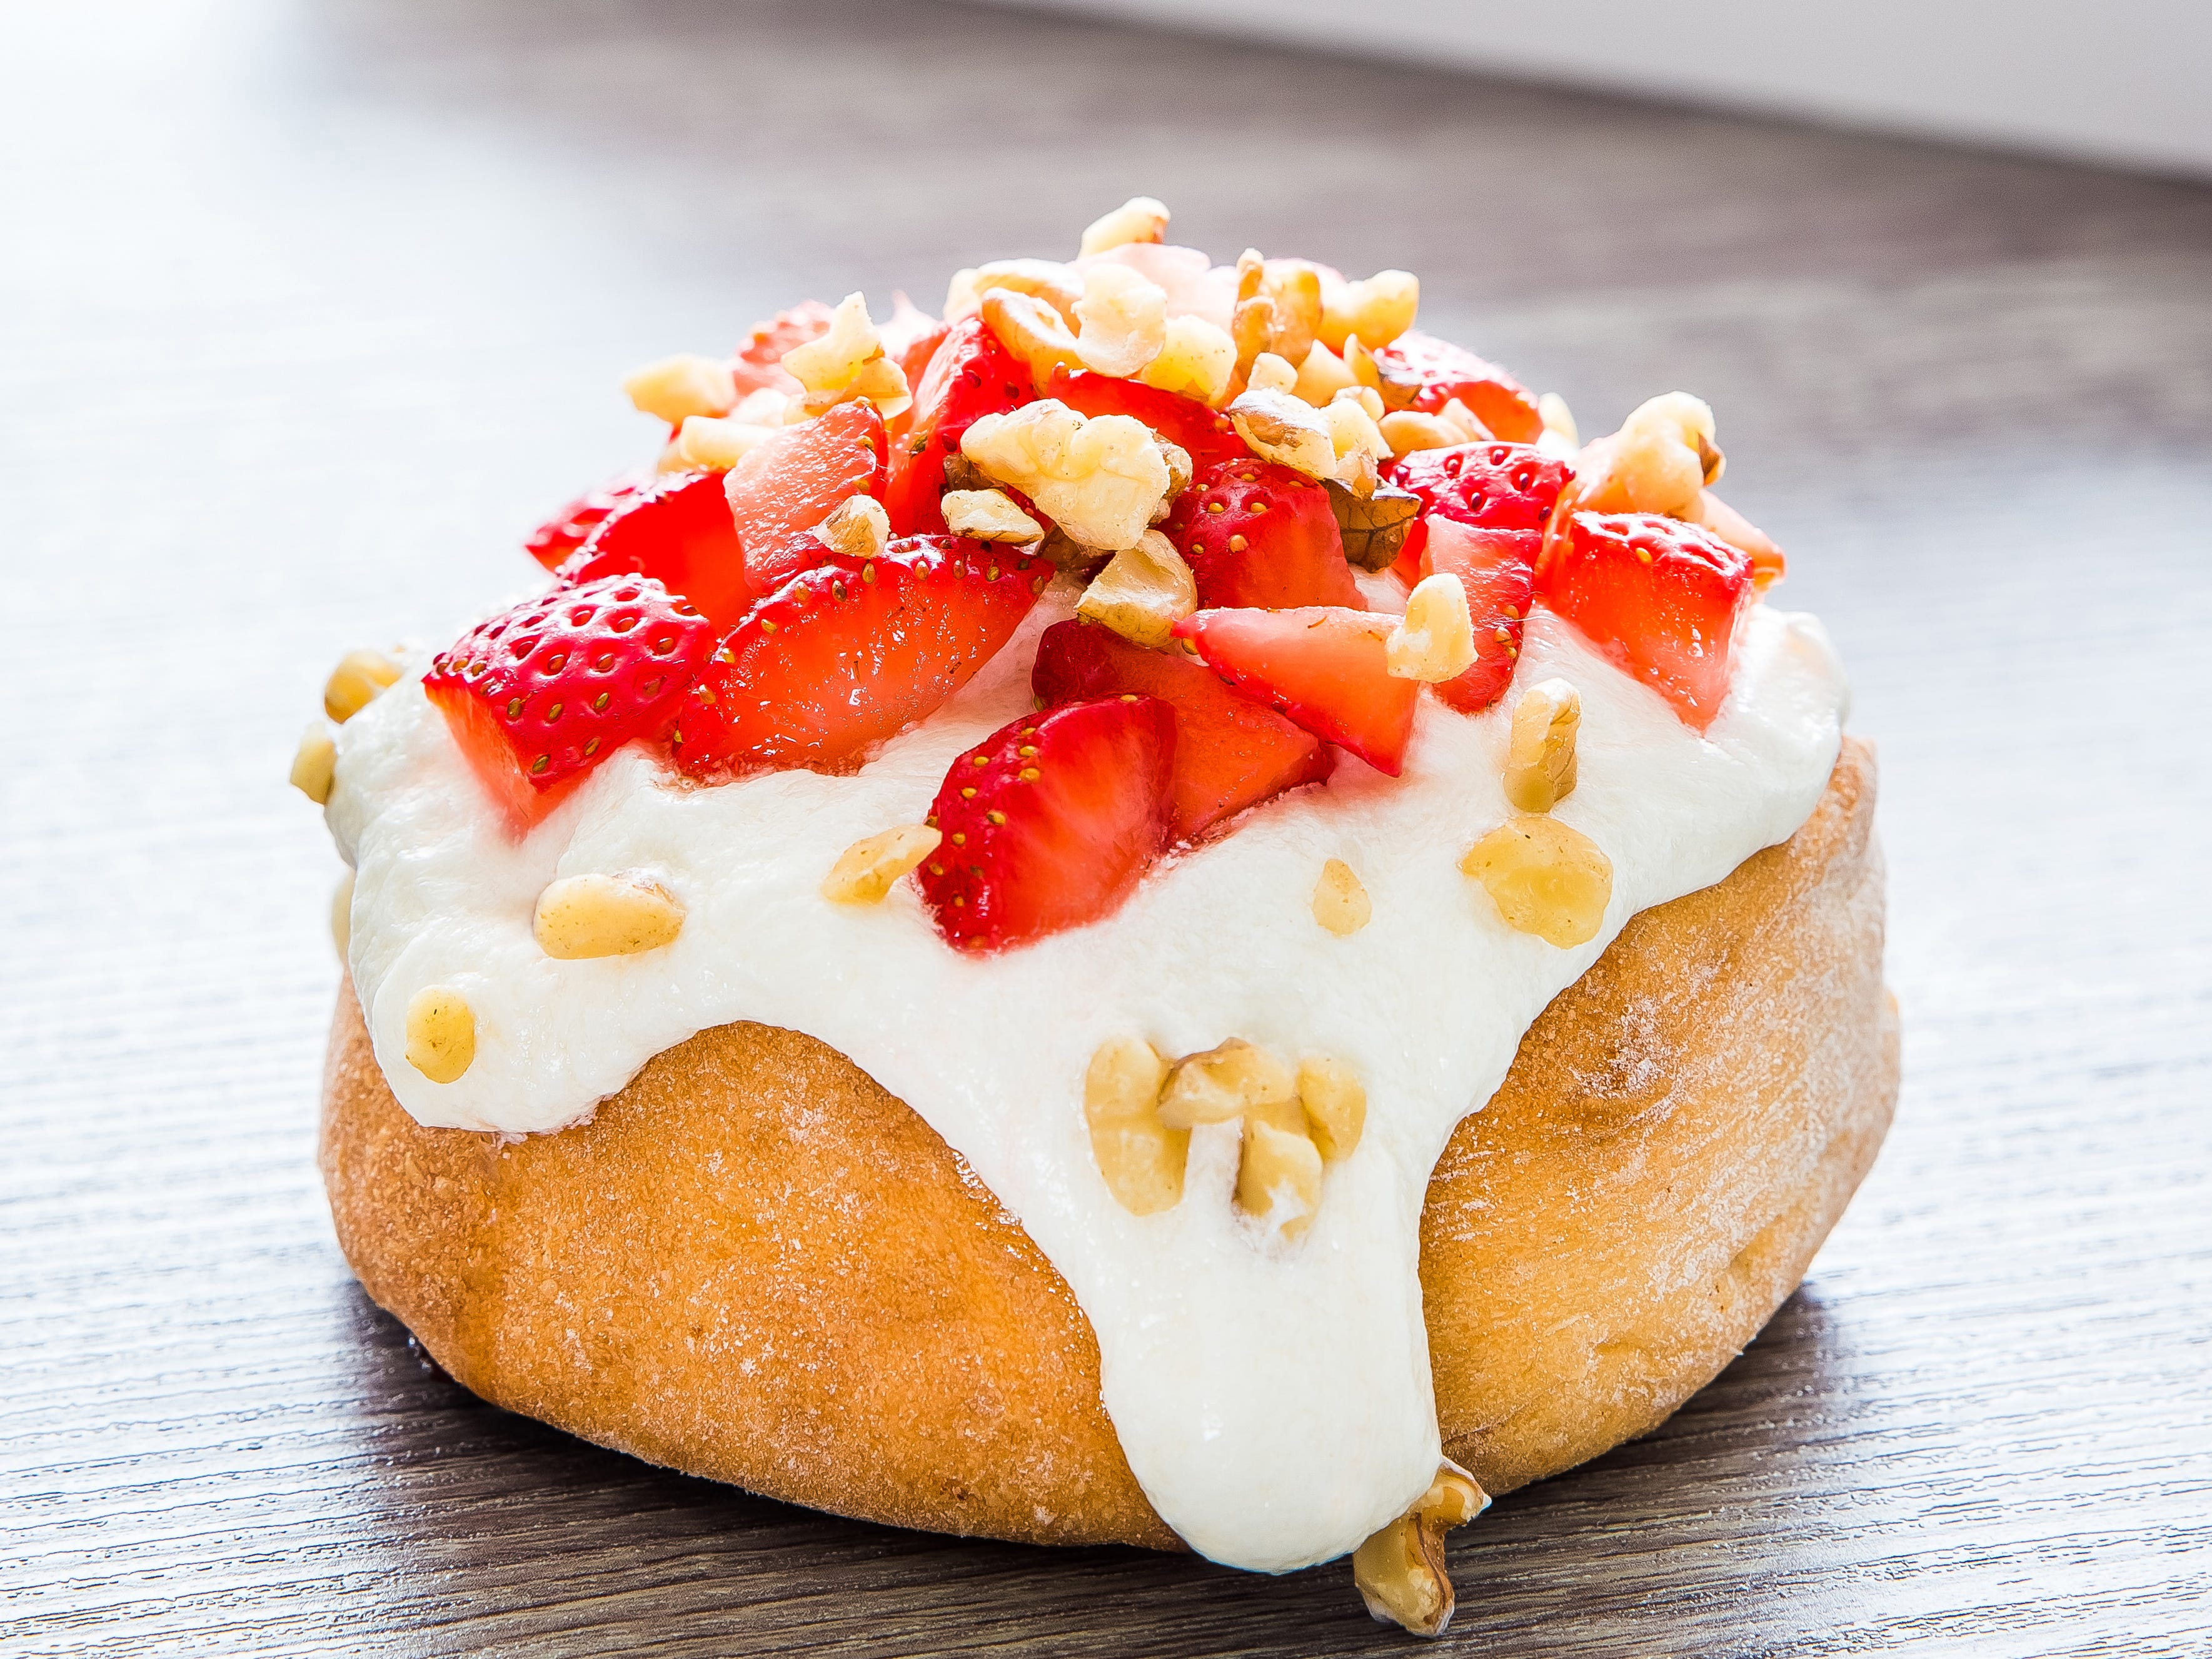 Cinnaholic's strawberries and cream cinnamon roll